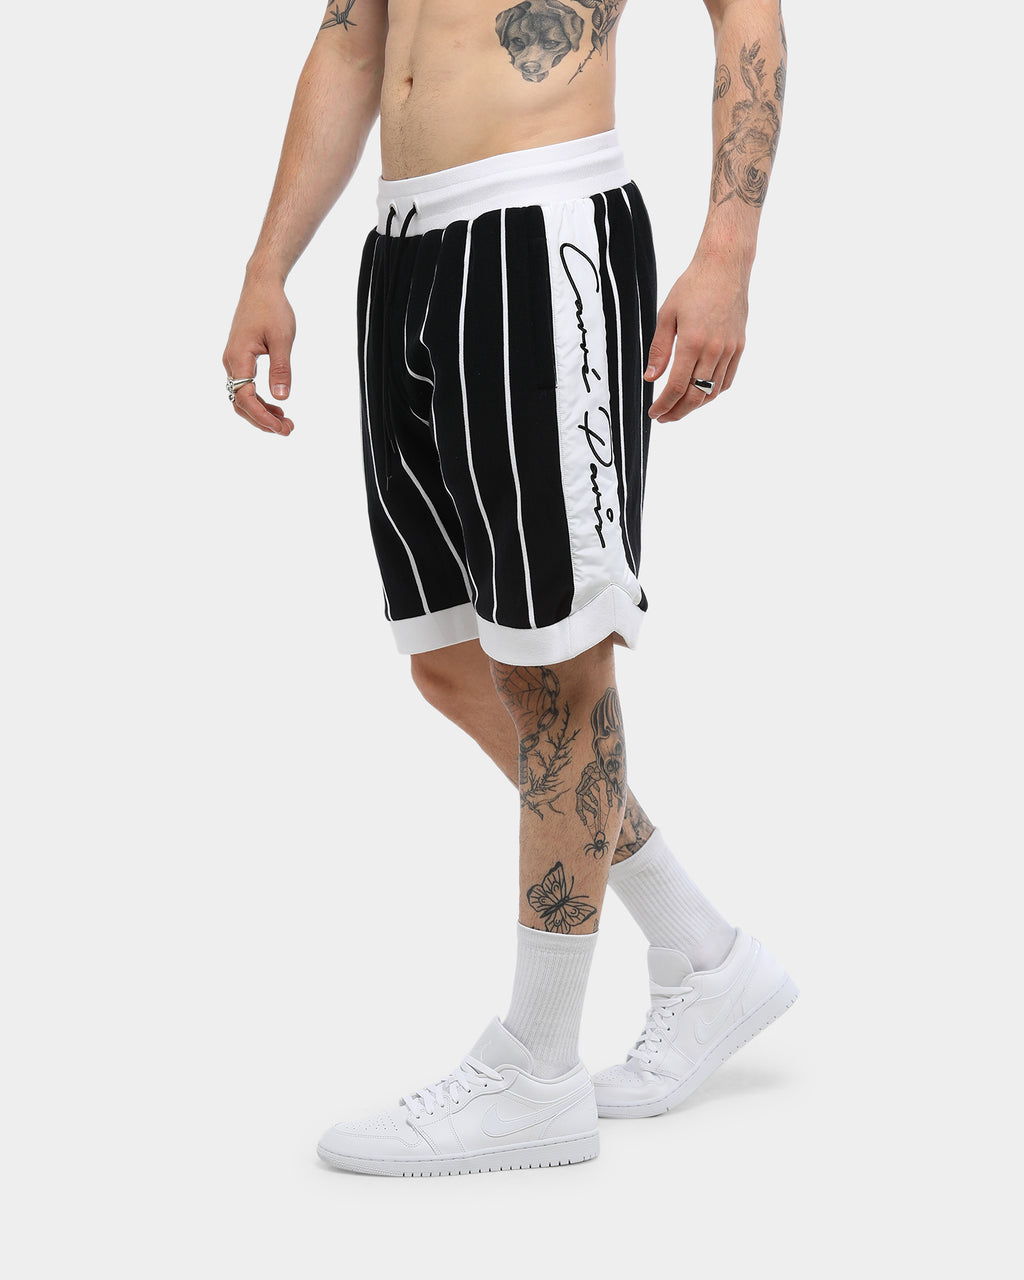 Carré Bande Practice Short Black